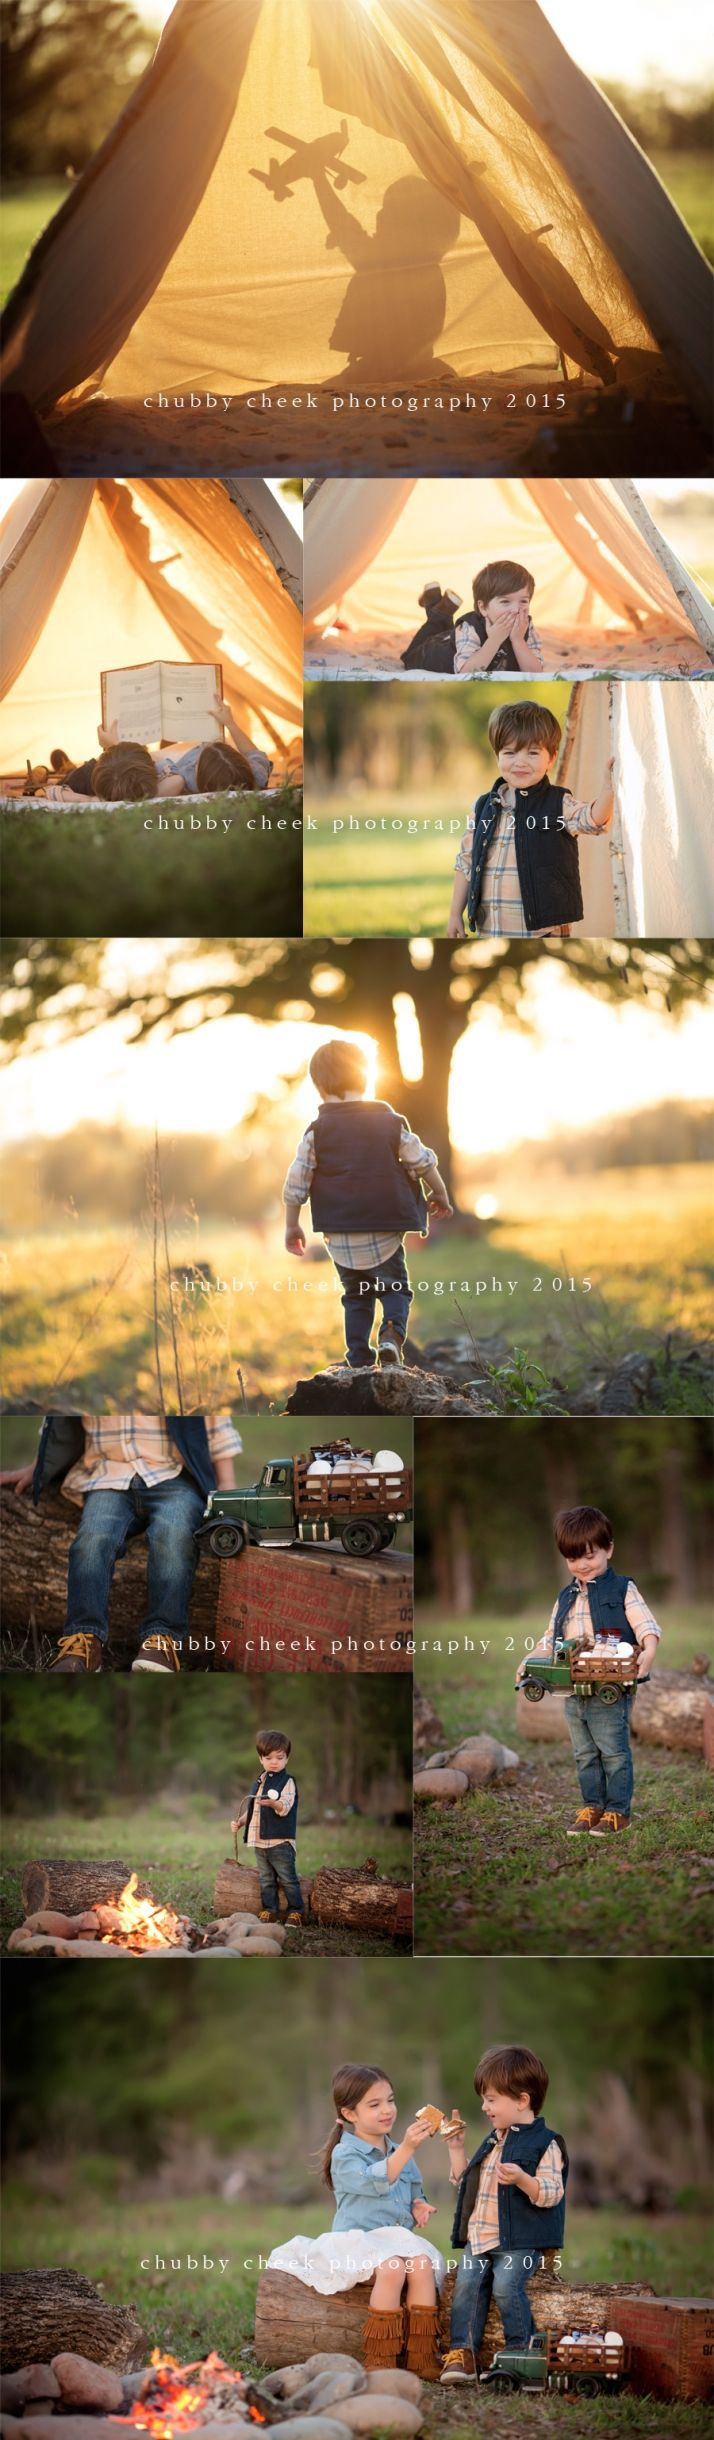 Campfire mini sessions for fall pix